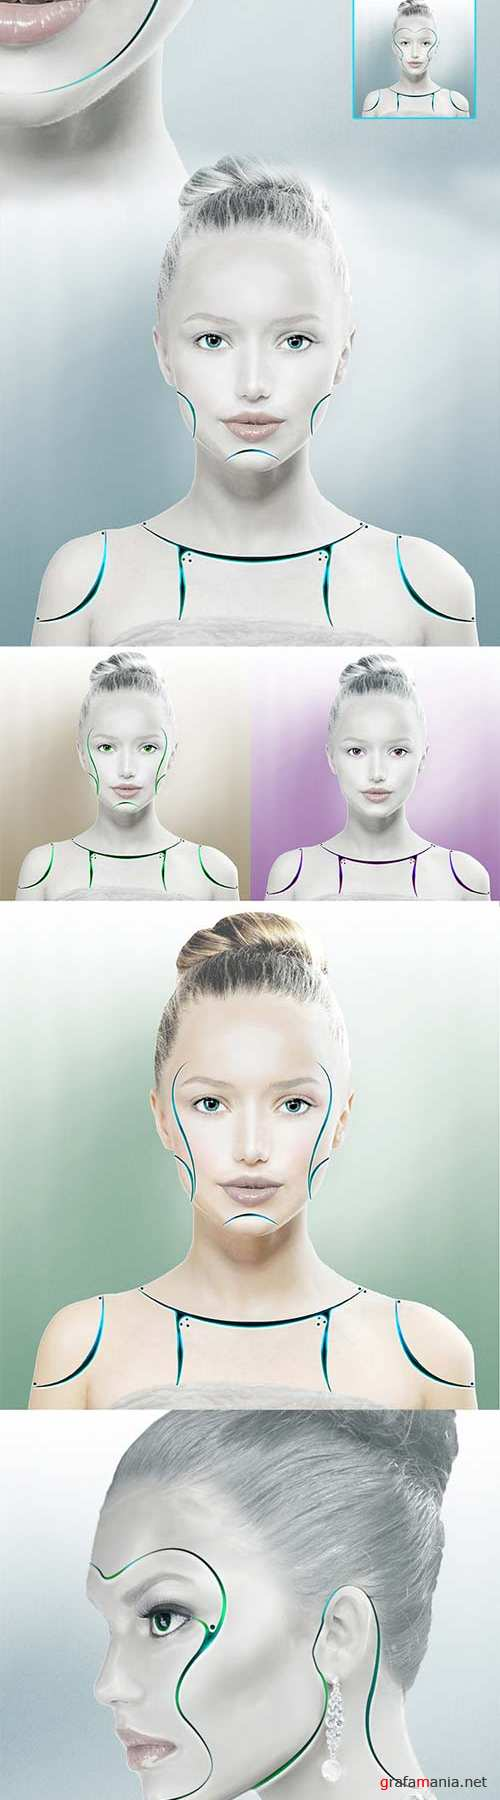 Graphicriver - Synthetic Human Action 9771548